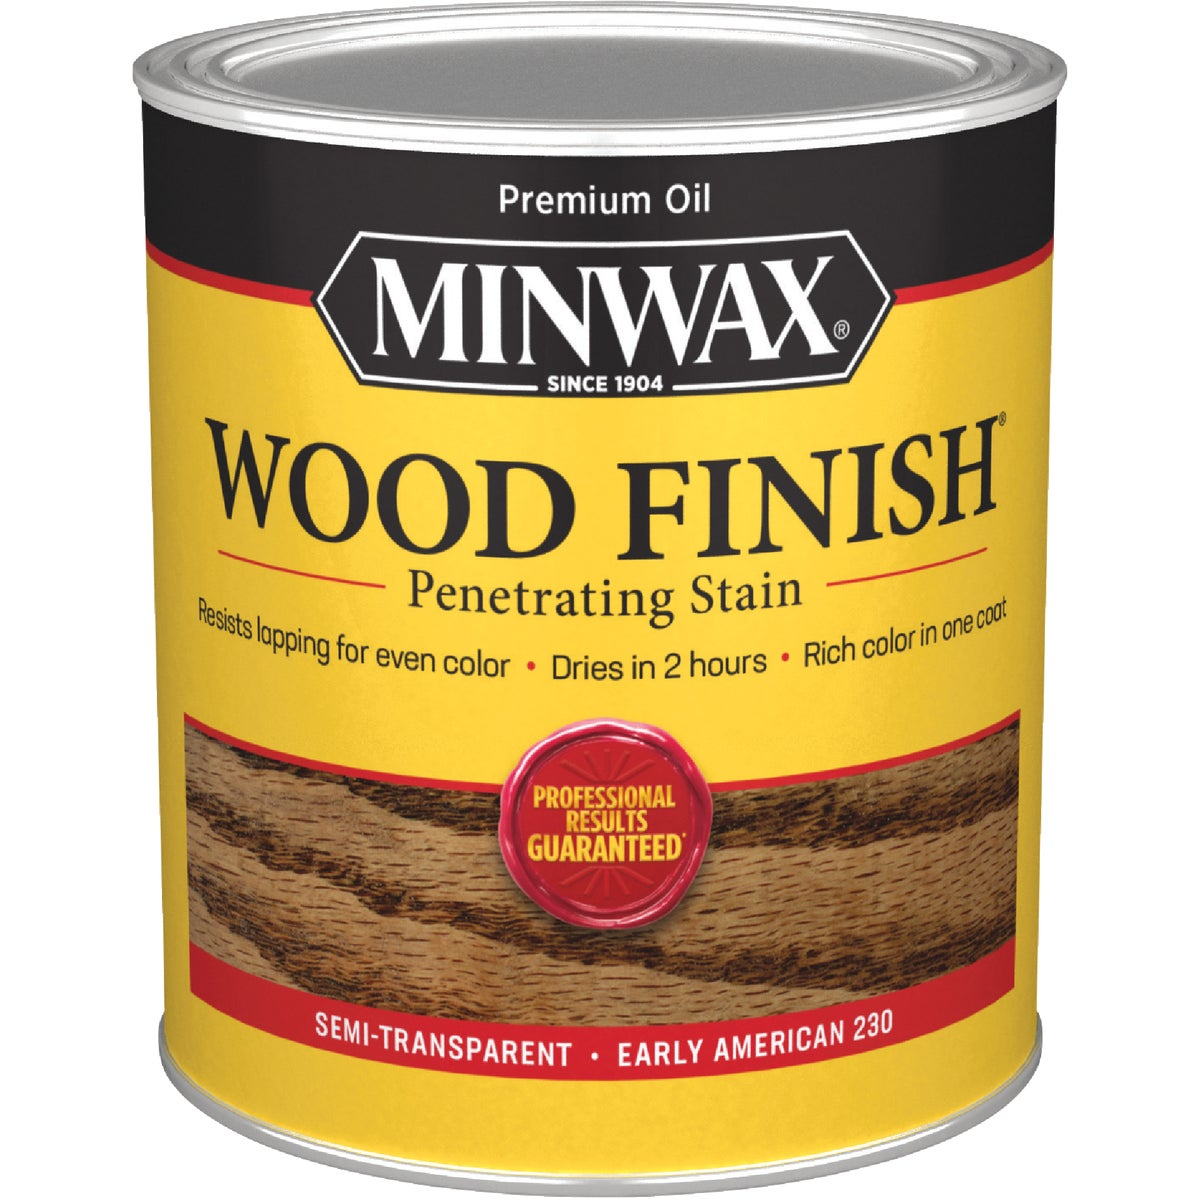 EARLY AMERICN WOOD STAIN - 70008 by Minwax Company